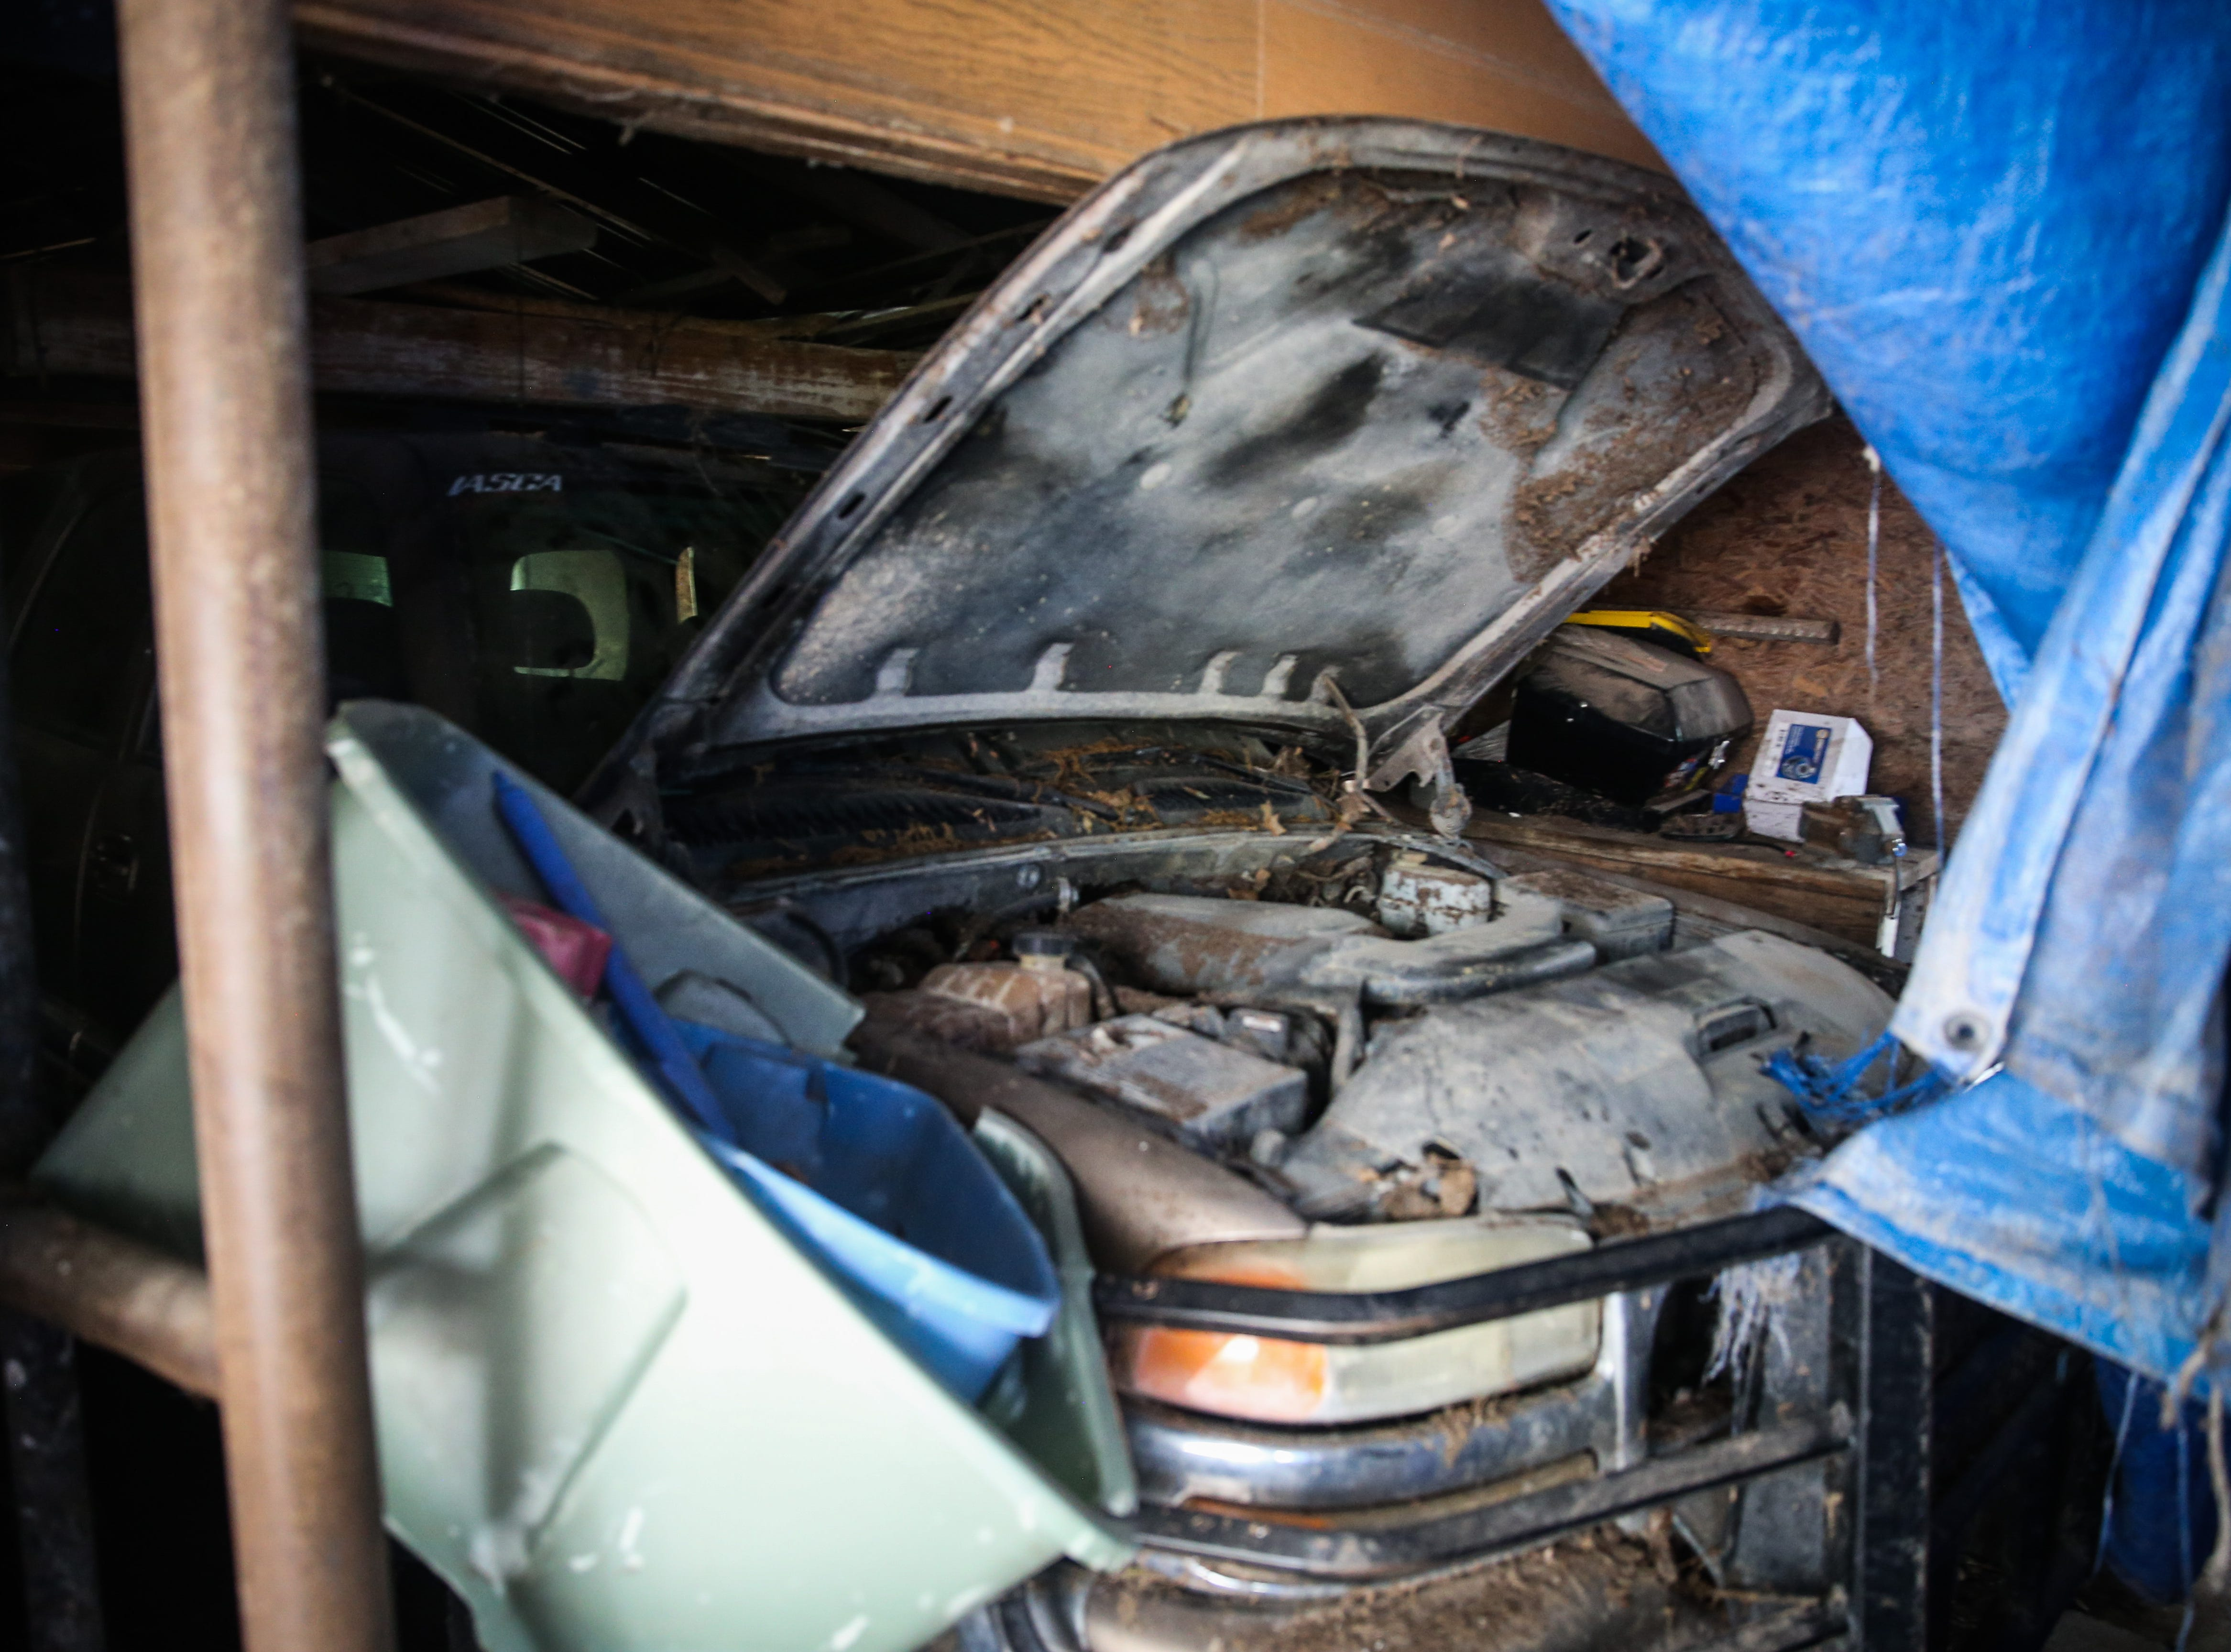 Felip DeHoyos' car is damaged Nov. 8, 2018, after it flooded during the Sept. 21 flood in Sonora.